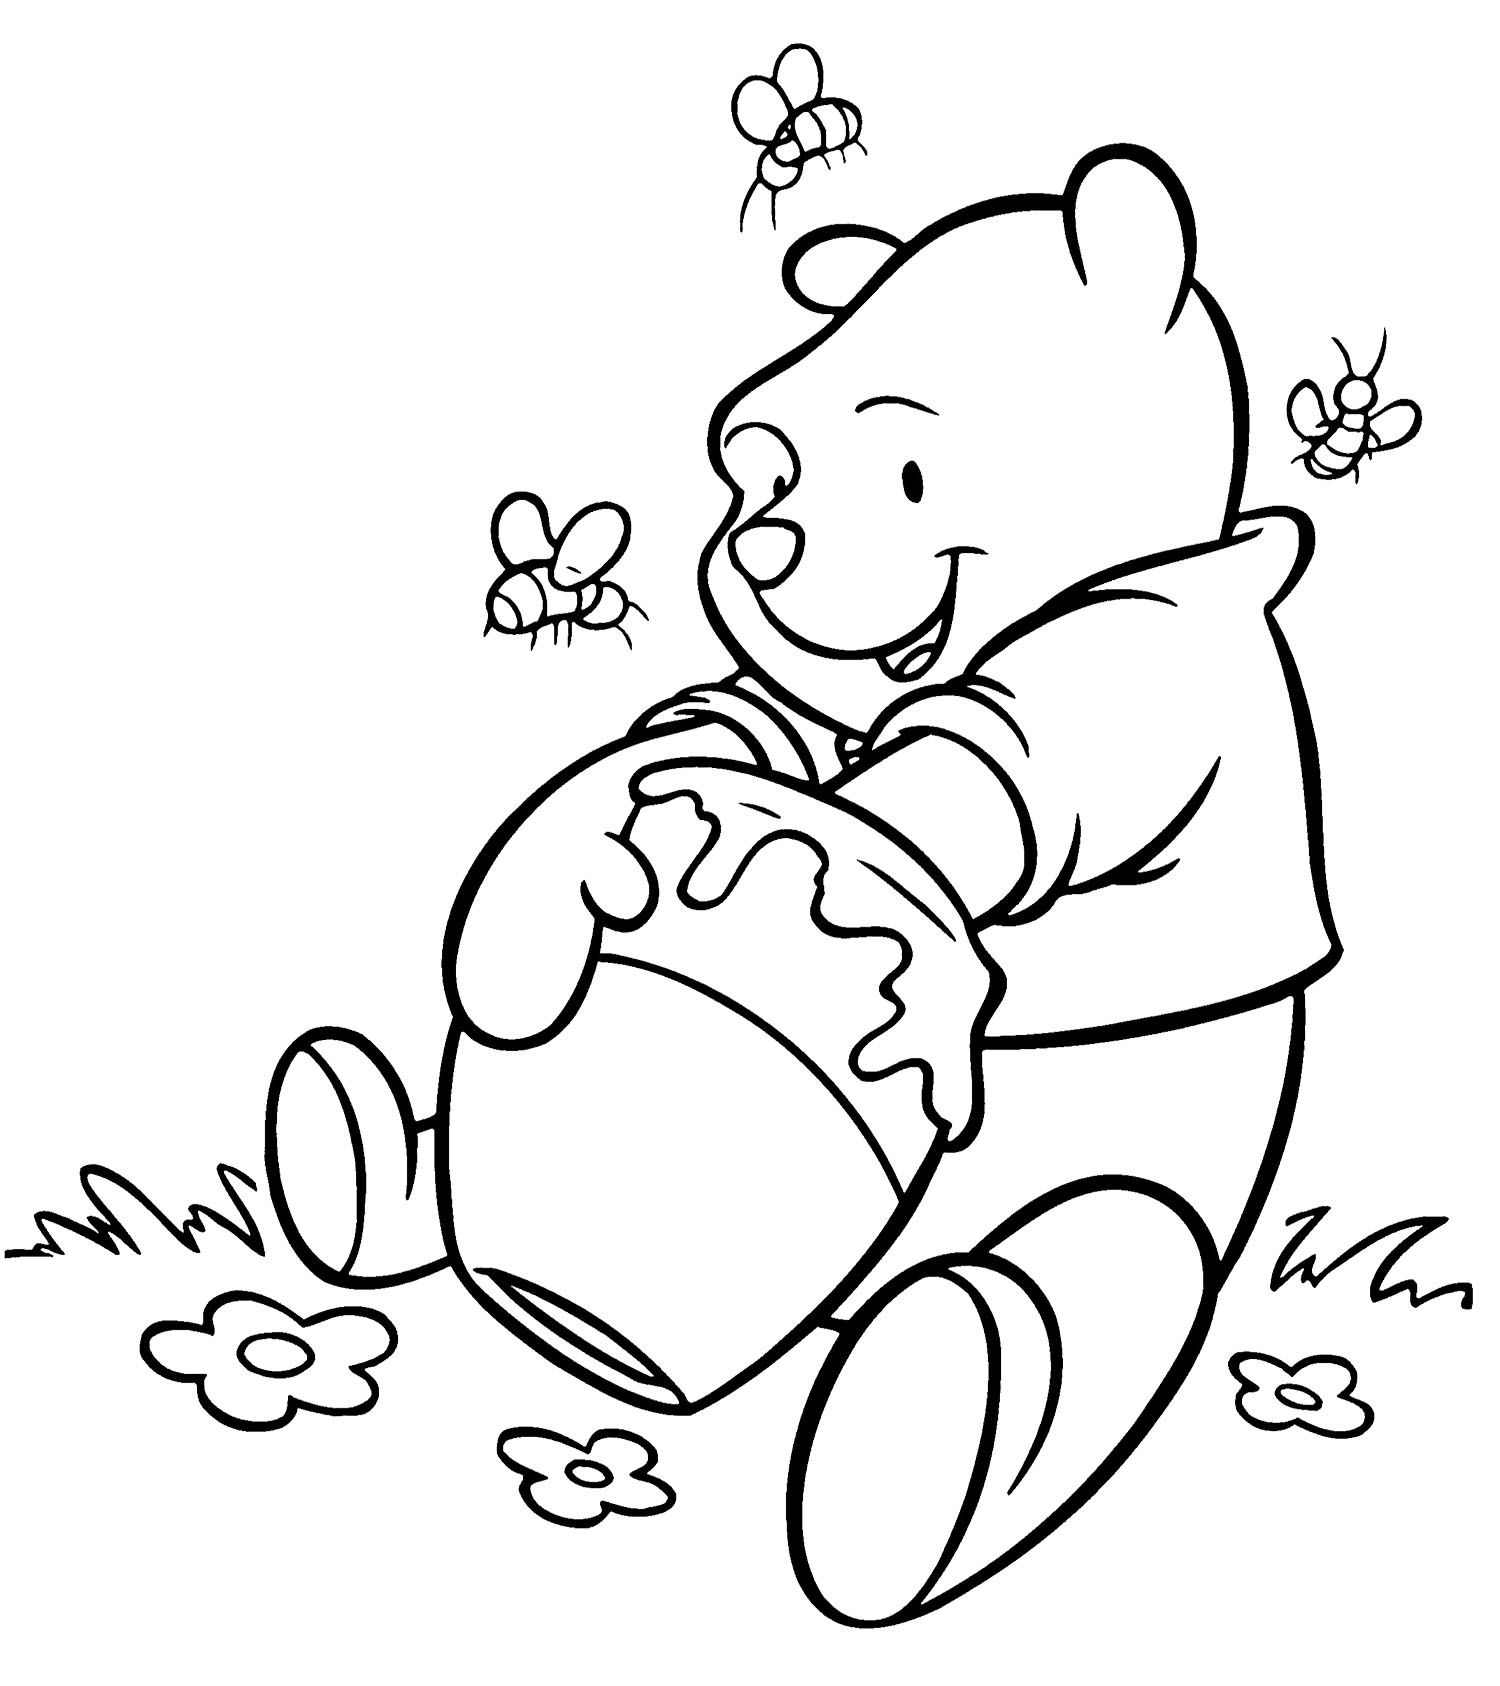 winnie the pooh getting delicious honey coloring page - Pooh Bear Coloring Pages Birthday